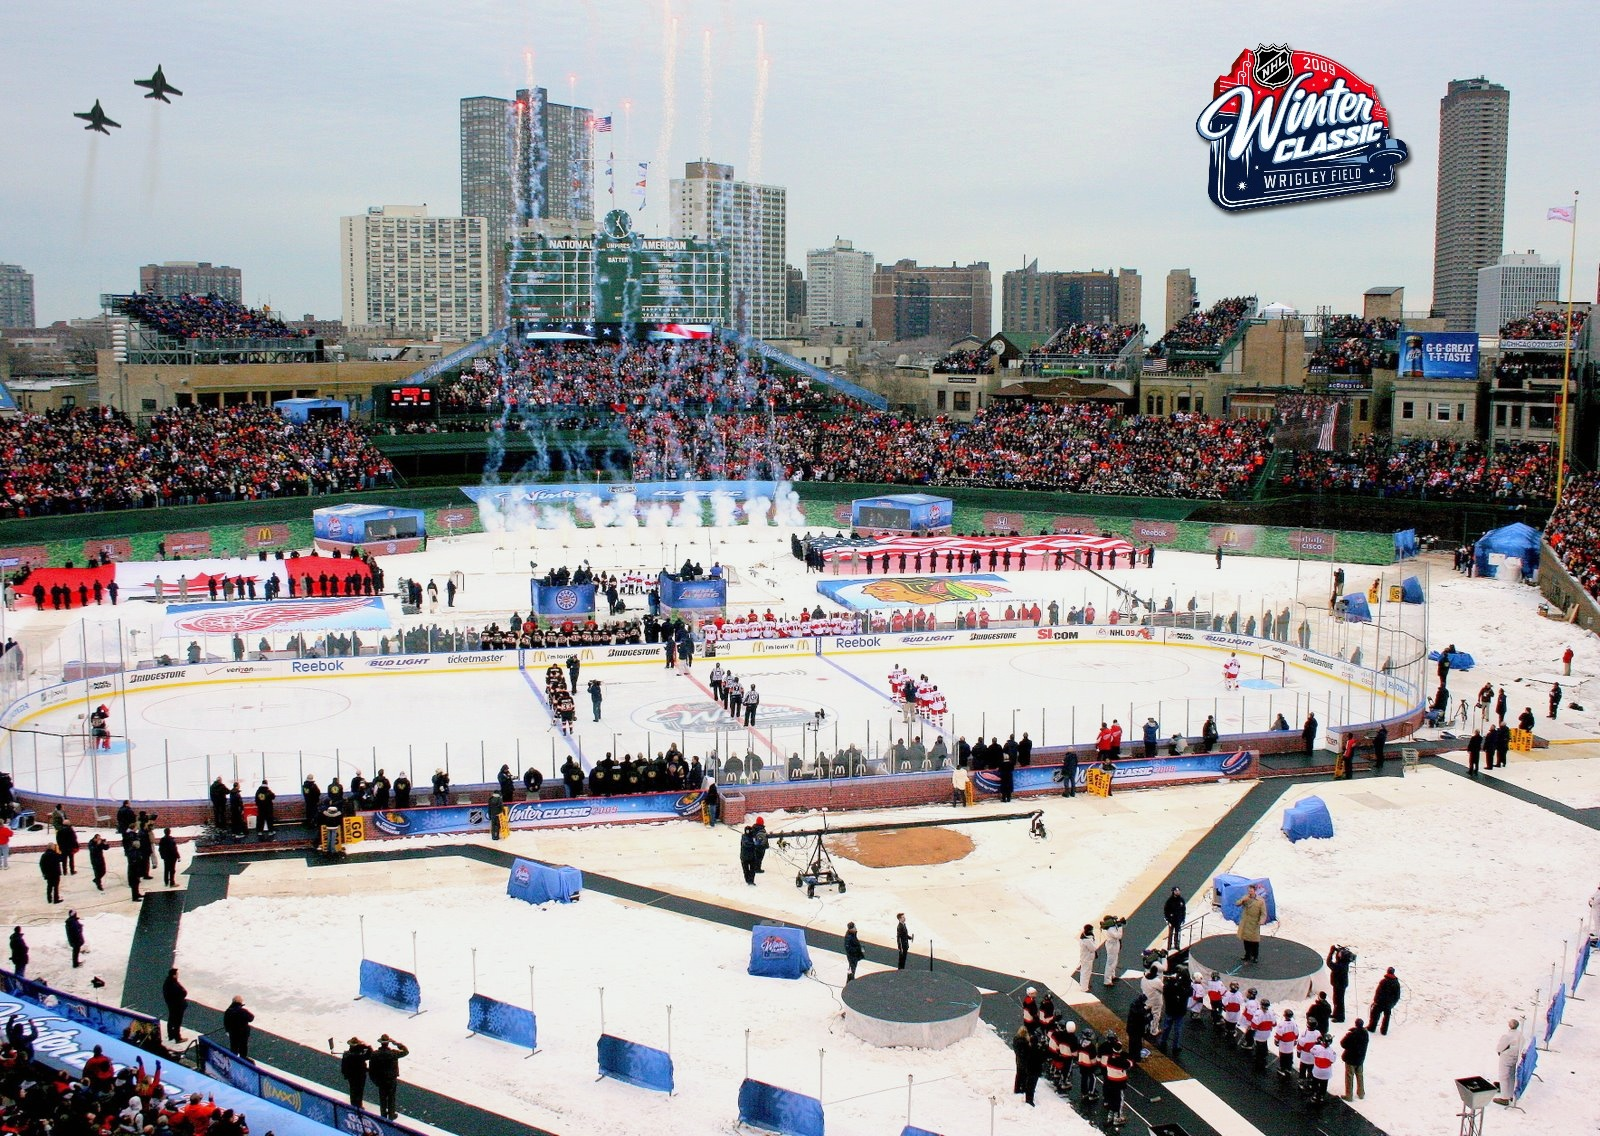 Winter Classic '09 Chicago.JPG